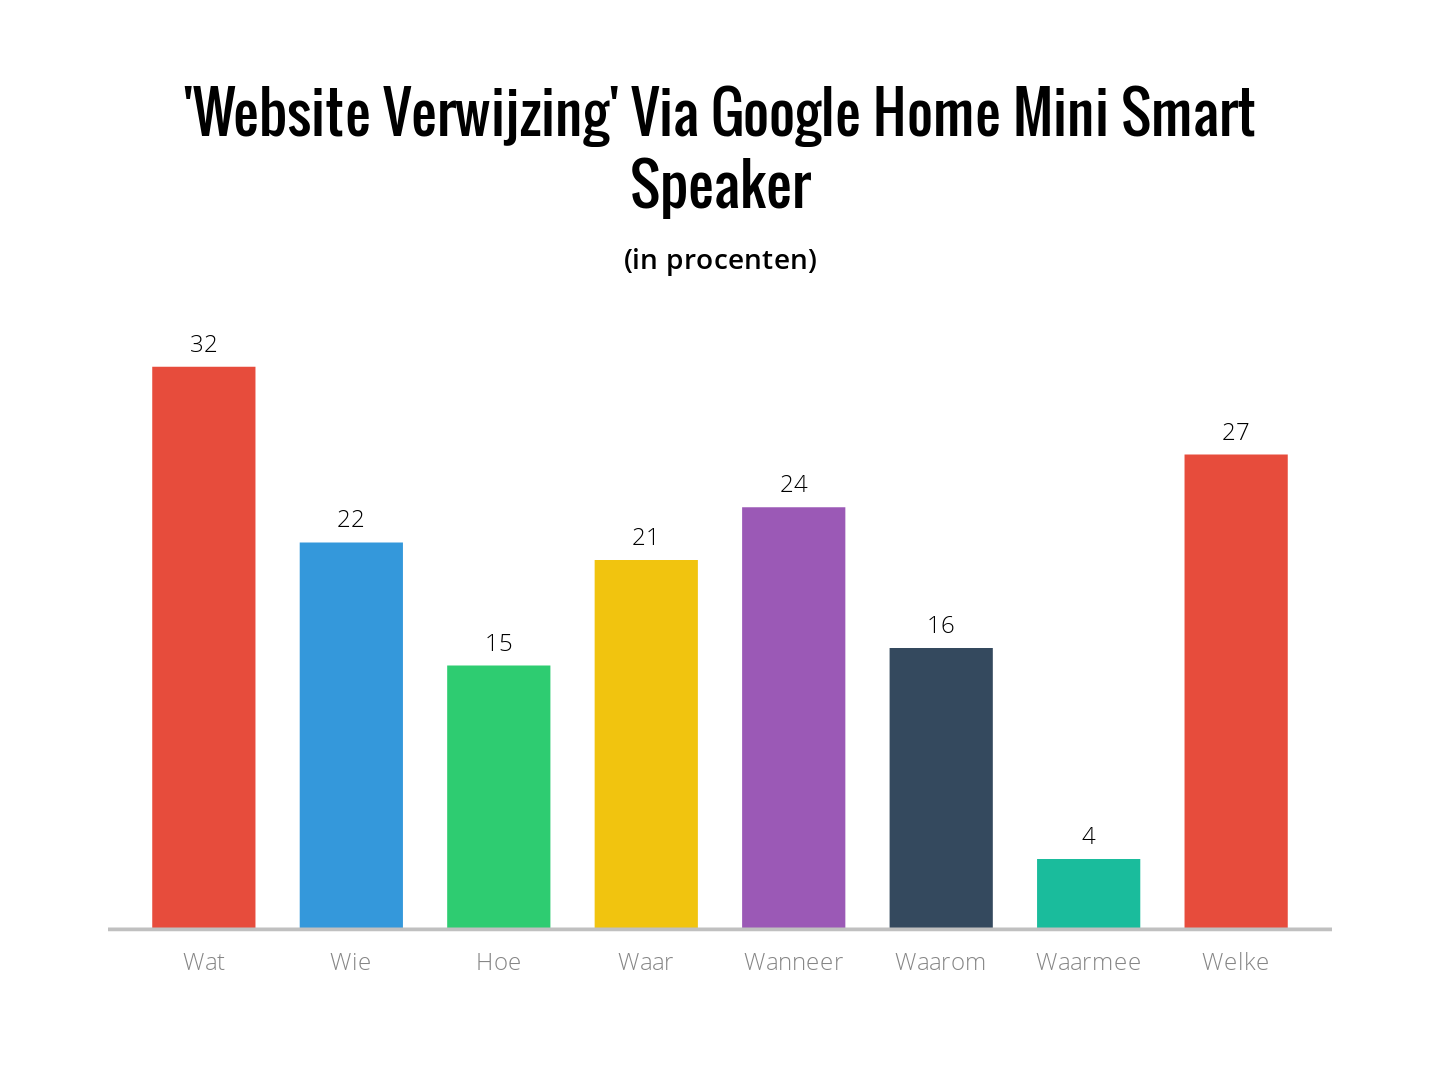 website verwijzing via Google home mini smart speaker